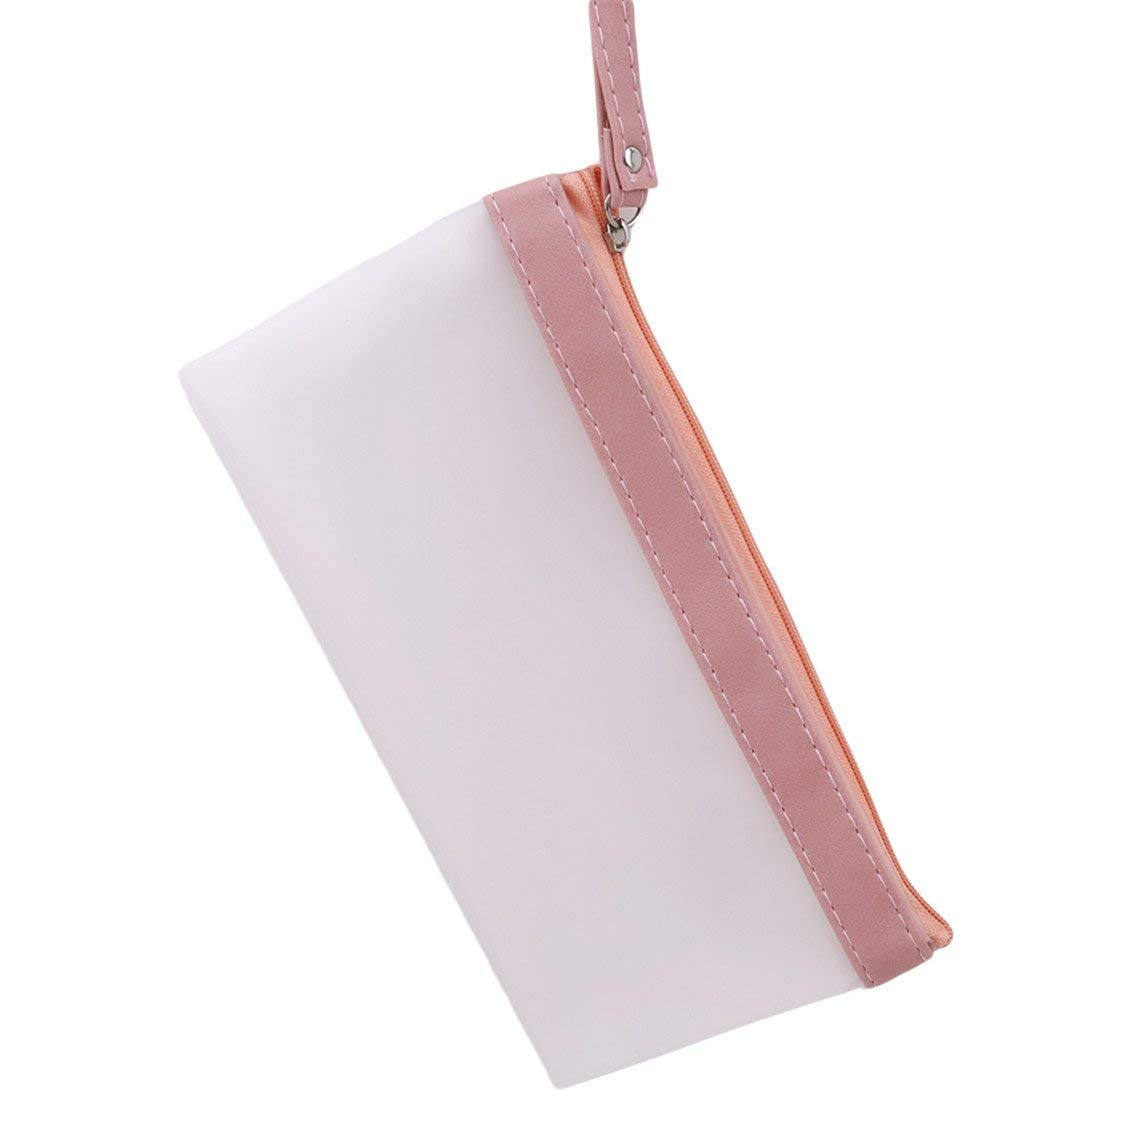 Rurah Transparent PVC Pencil Case Portable Zipper Closure Frosted Stationery Case School Office Supplies,Pink